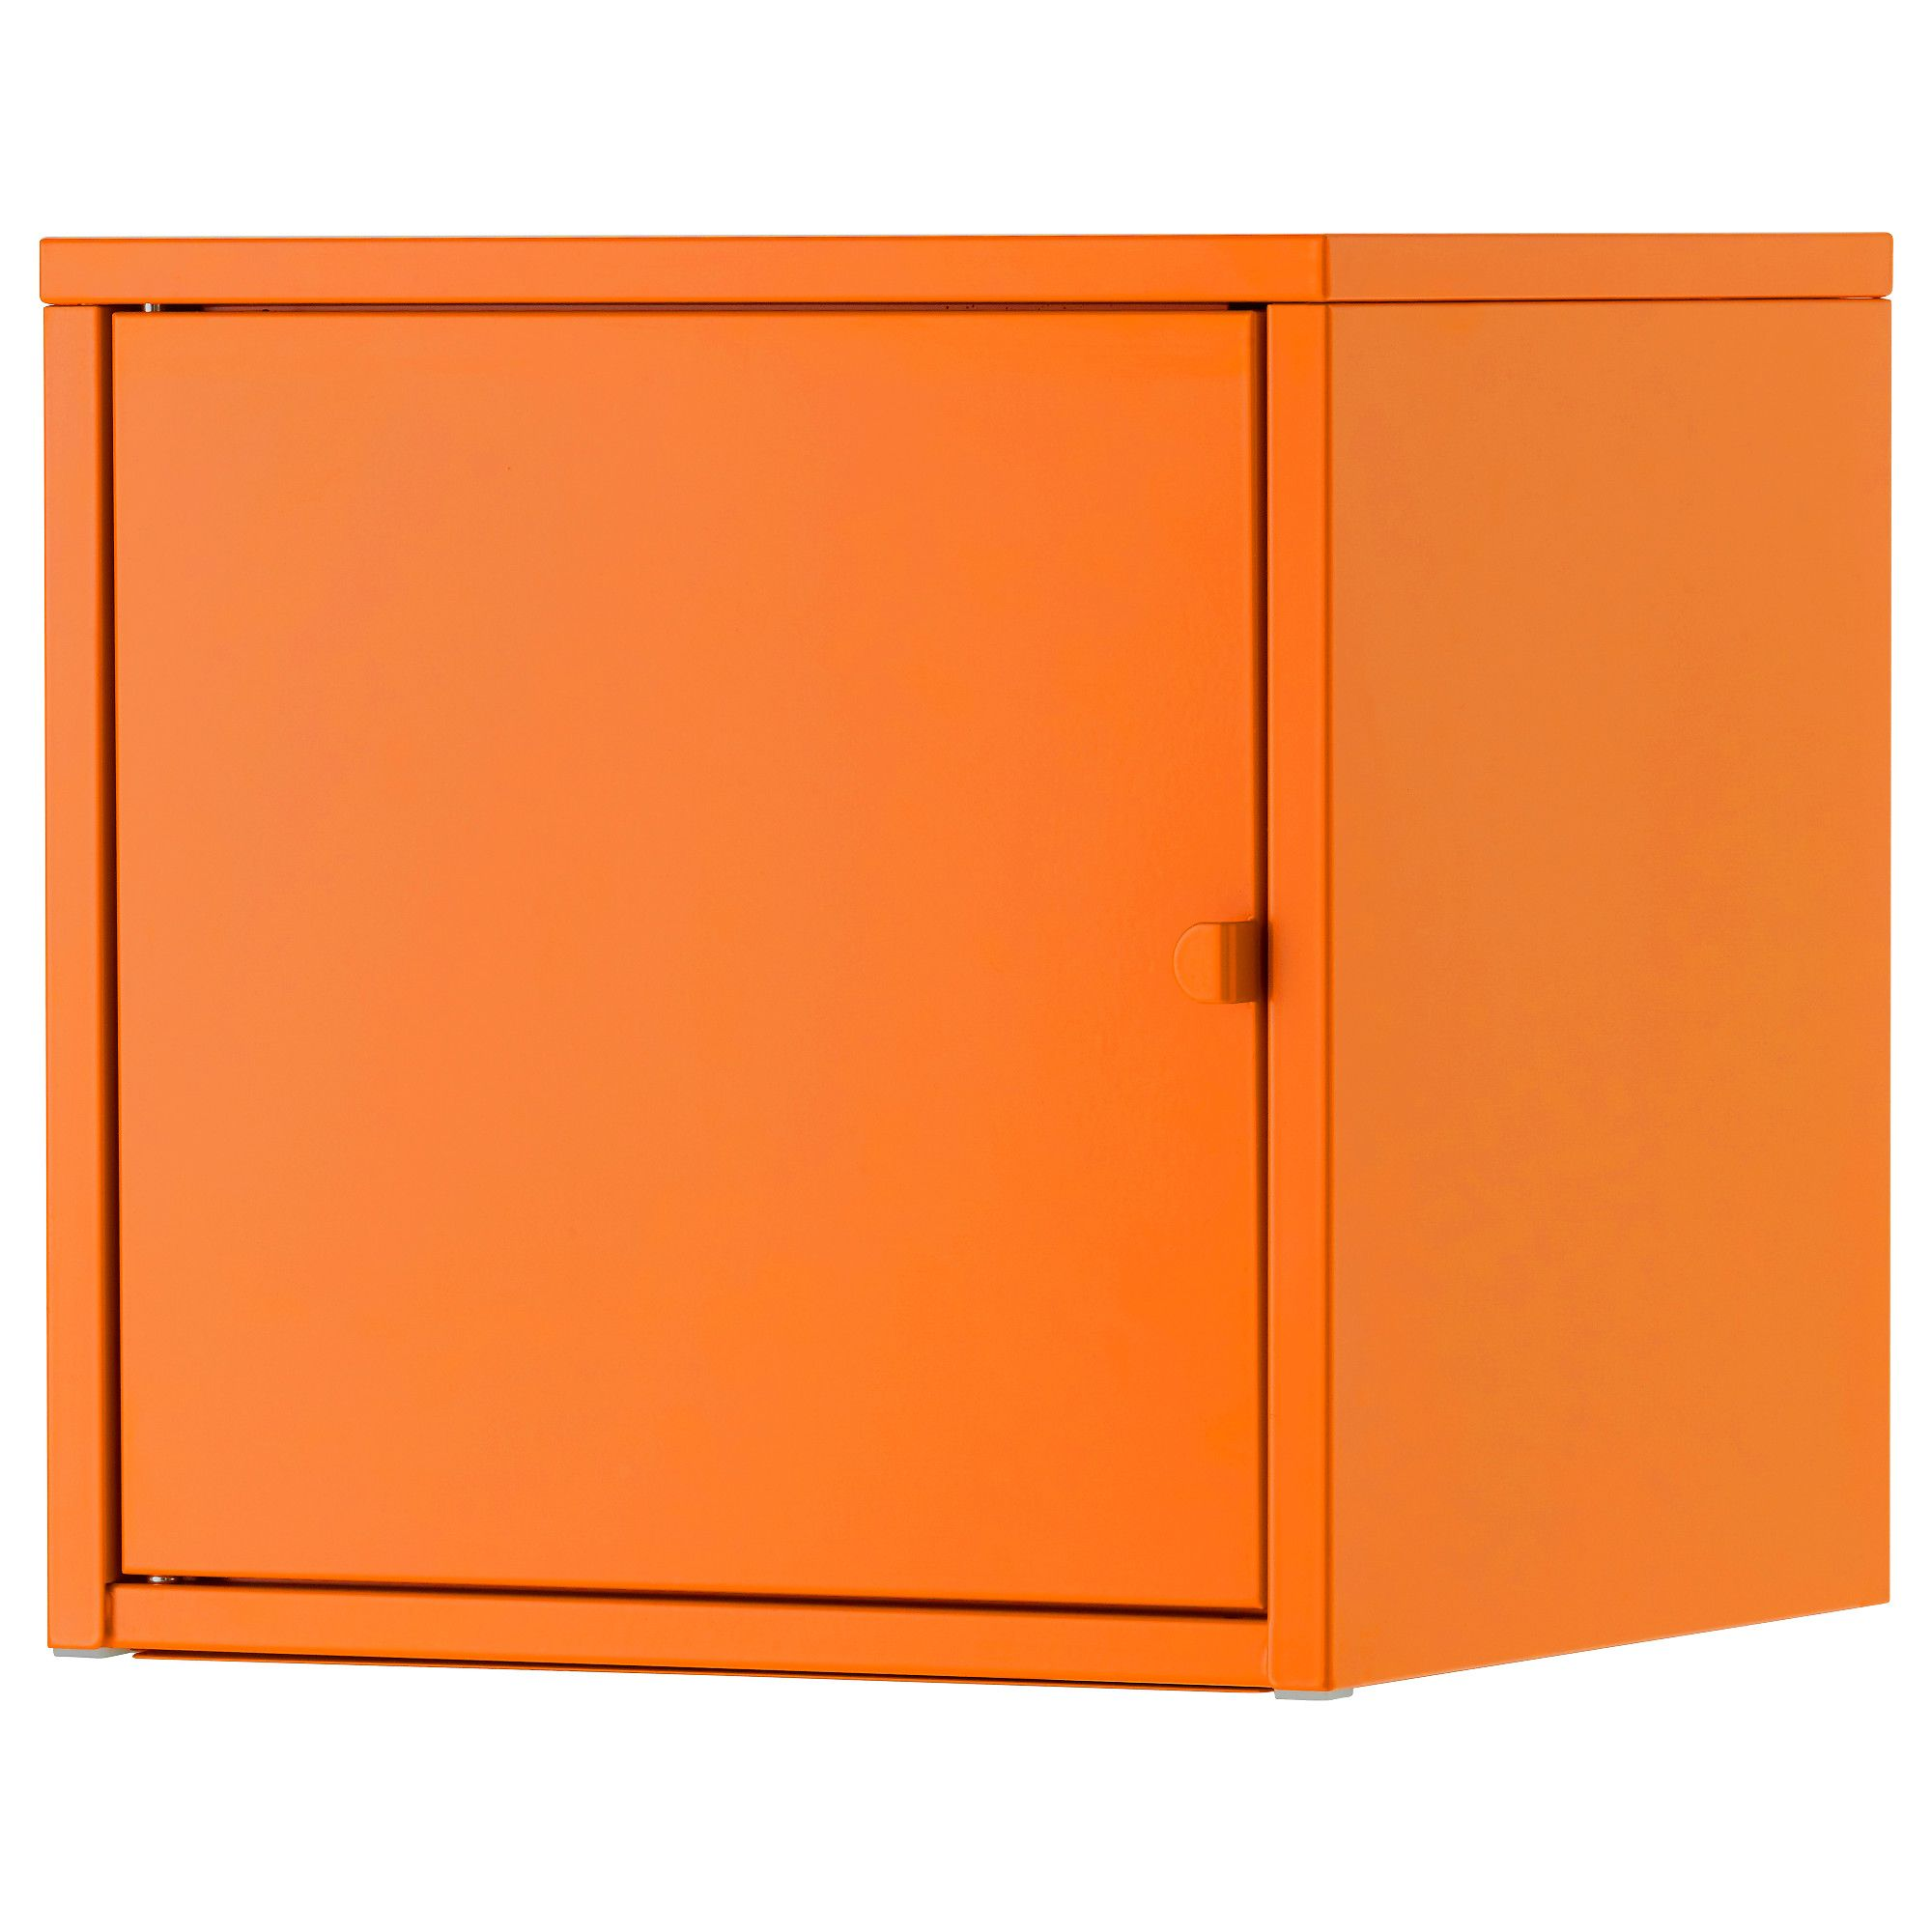 Locker Storage Ikea Lixhult Cabinet, Metal, Orange | Becky And Dave | Display